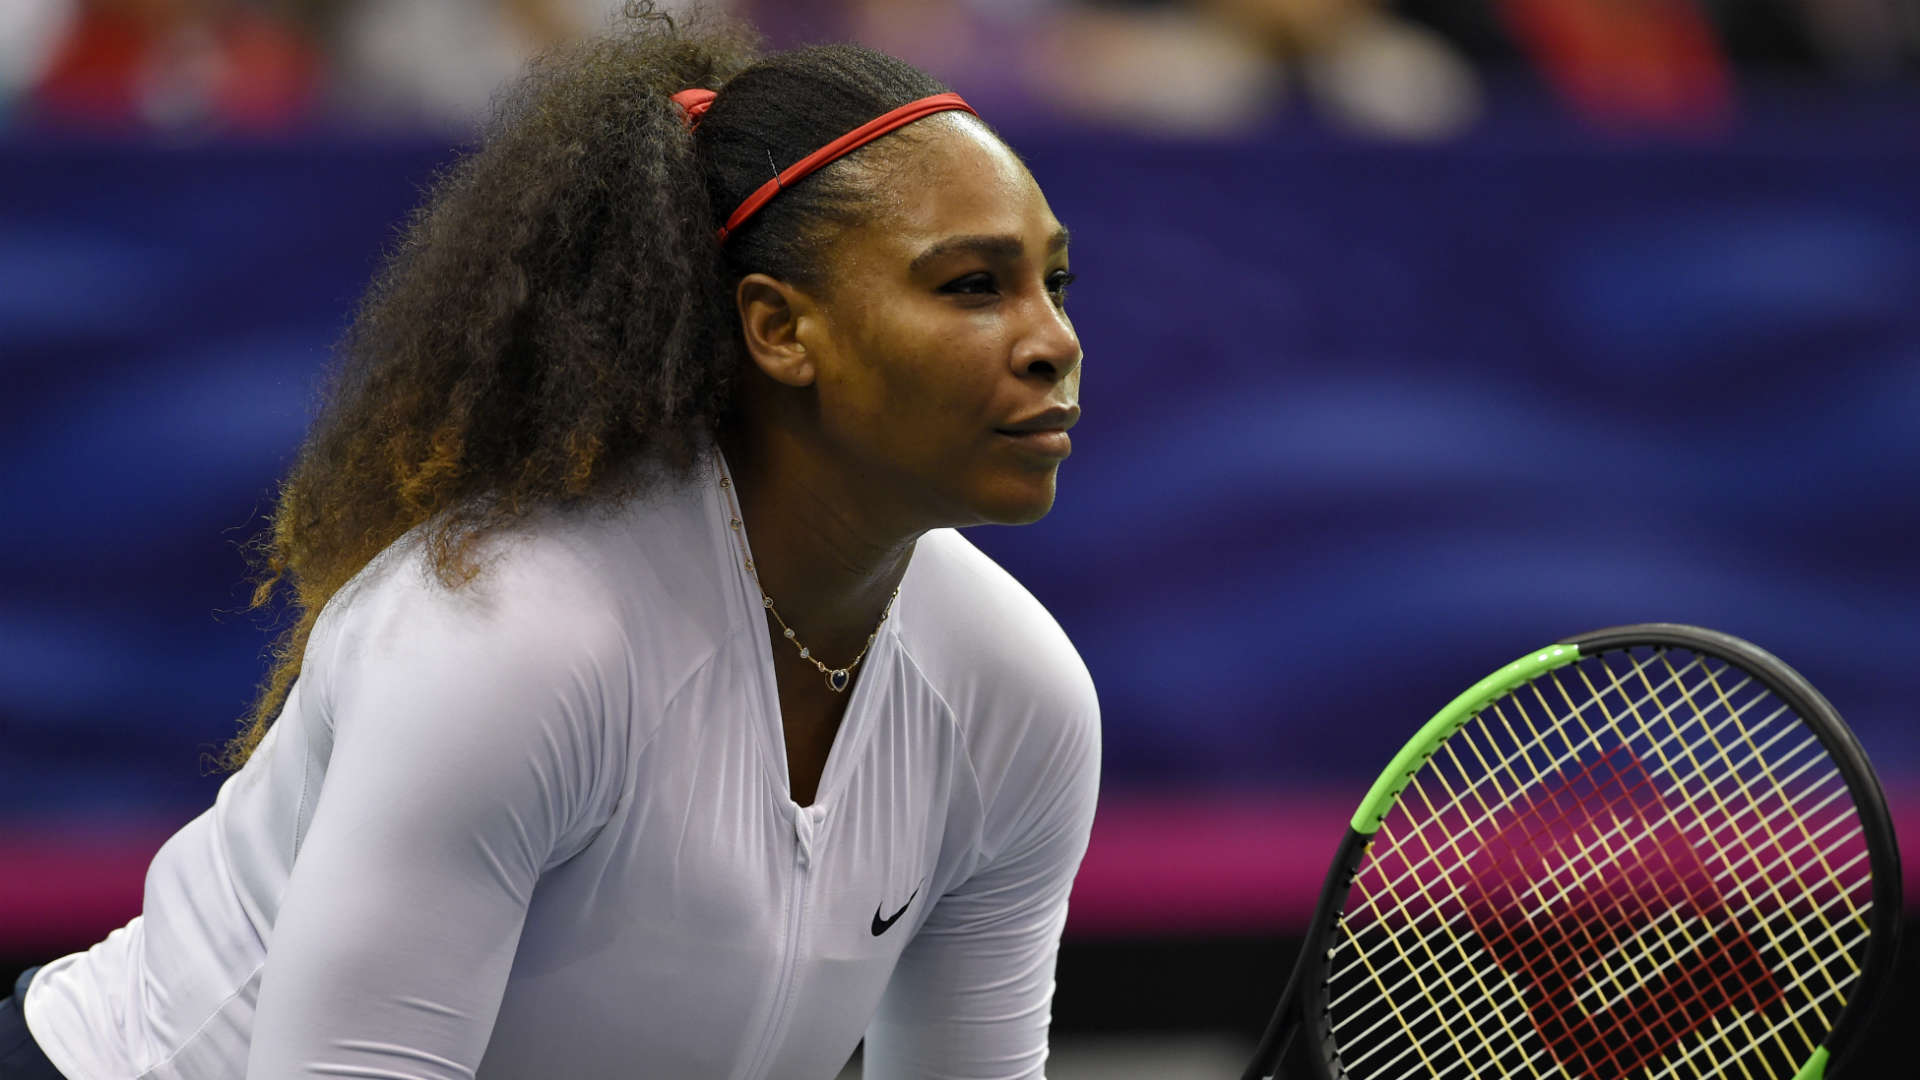 Serena Williams Not At Her Best But Ready To Make Comeback